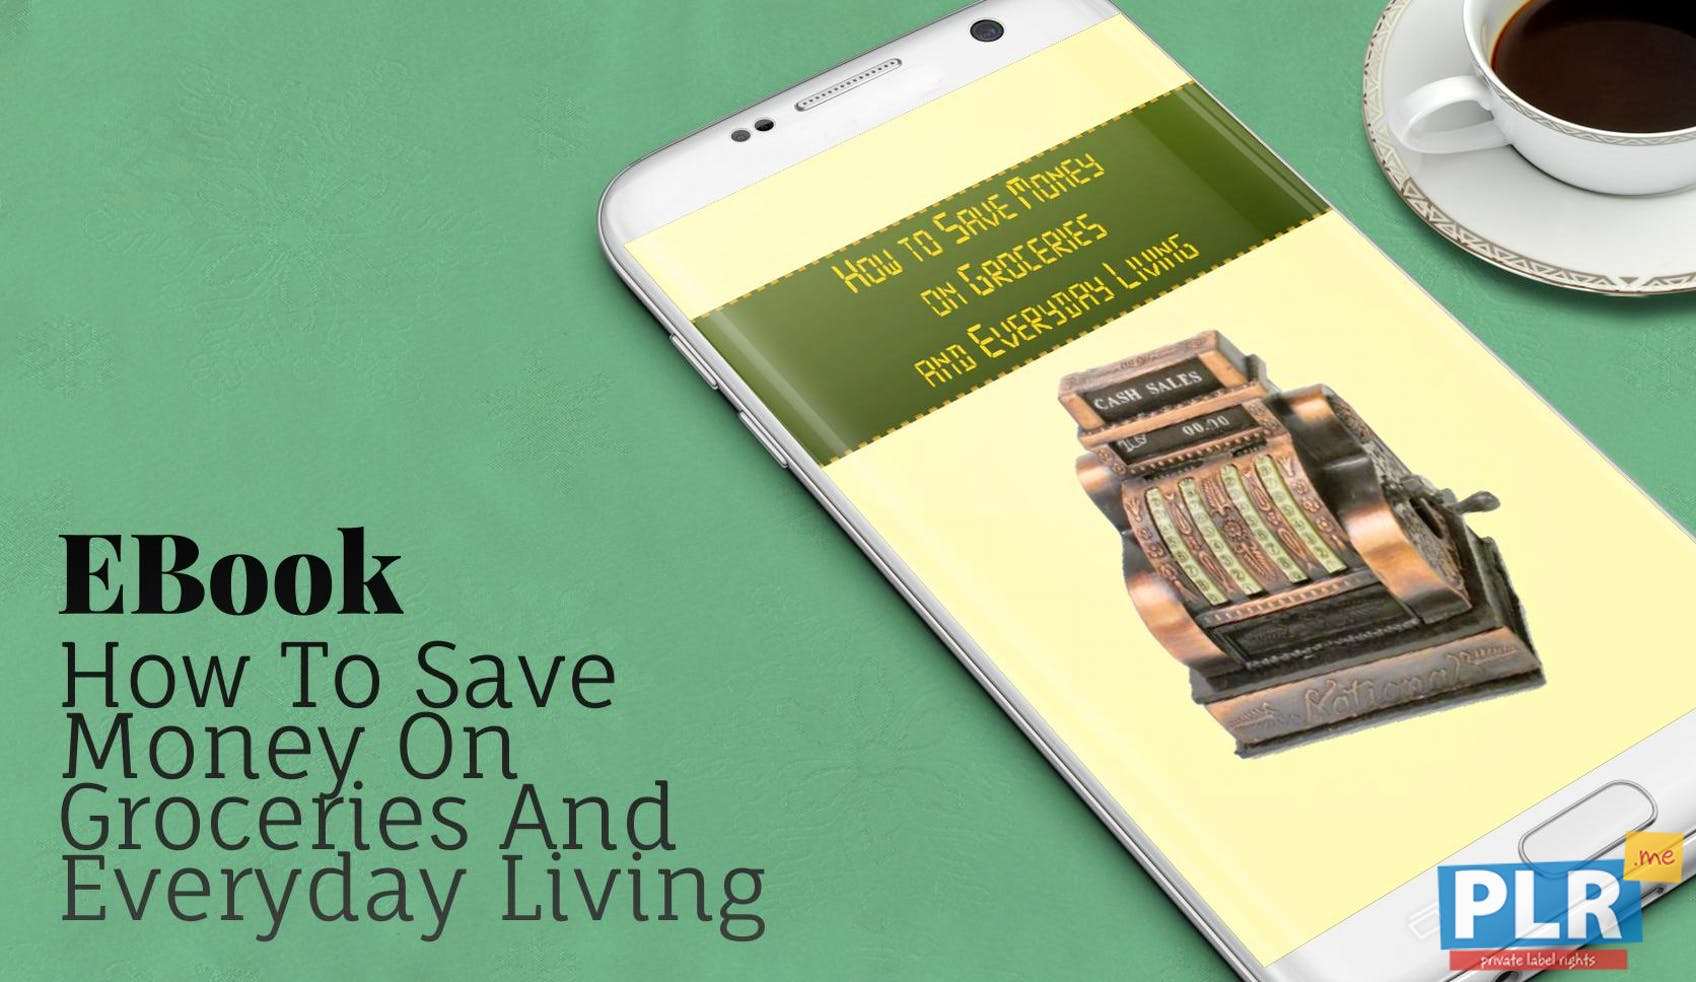 How To Save Money On Groceries And Everyday Living